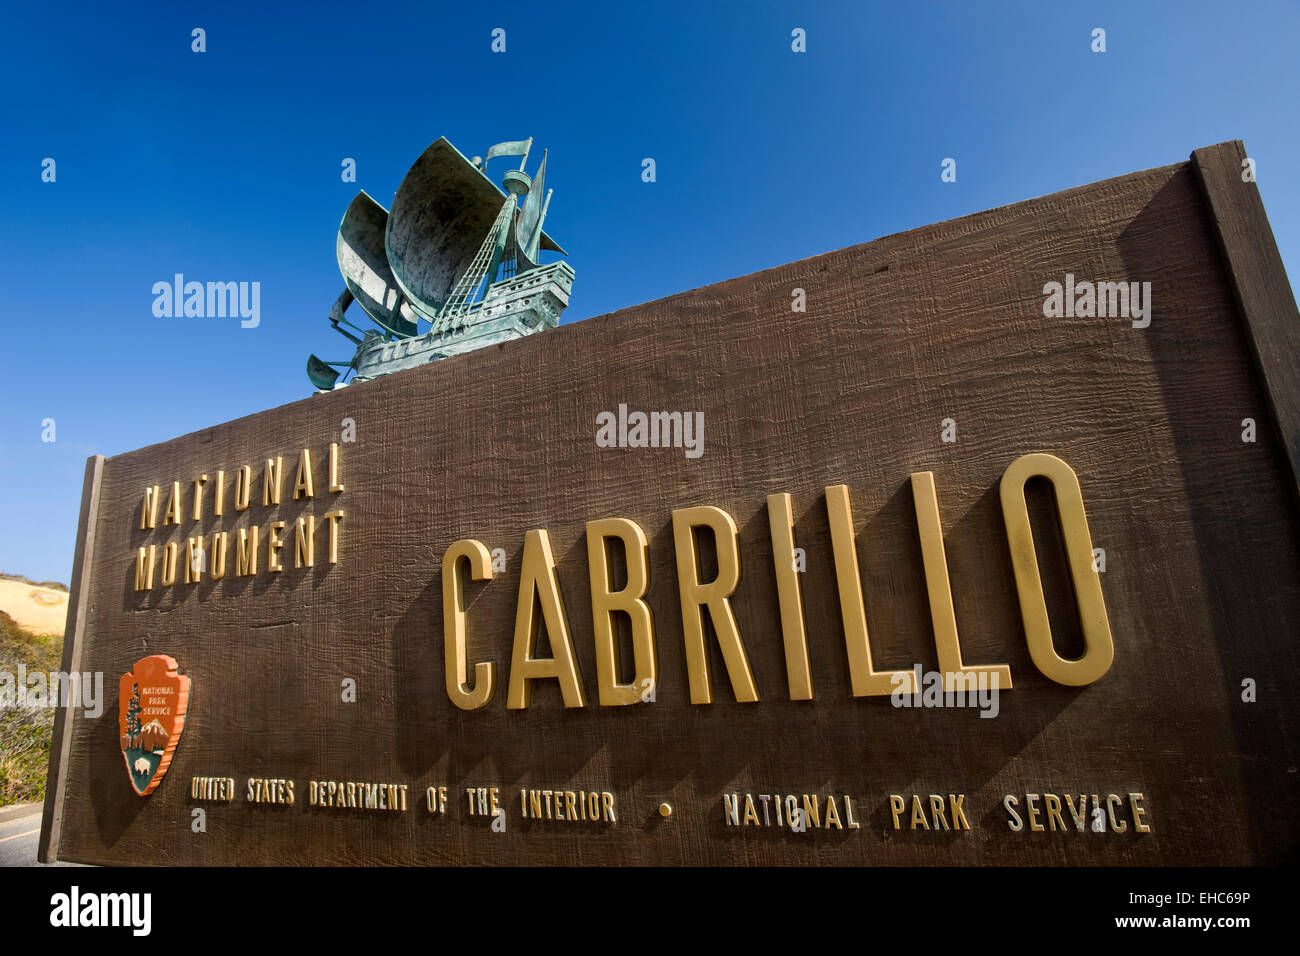 CABRILLO NATIONAL MONUMENT ENTRANCE SIGN POINT LOMA SAN DIEGO CALIFORNIA USA - Stock Image